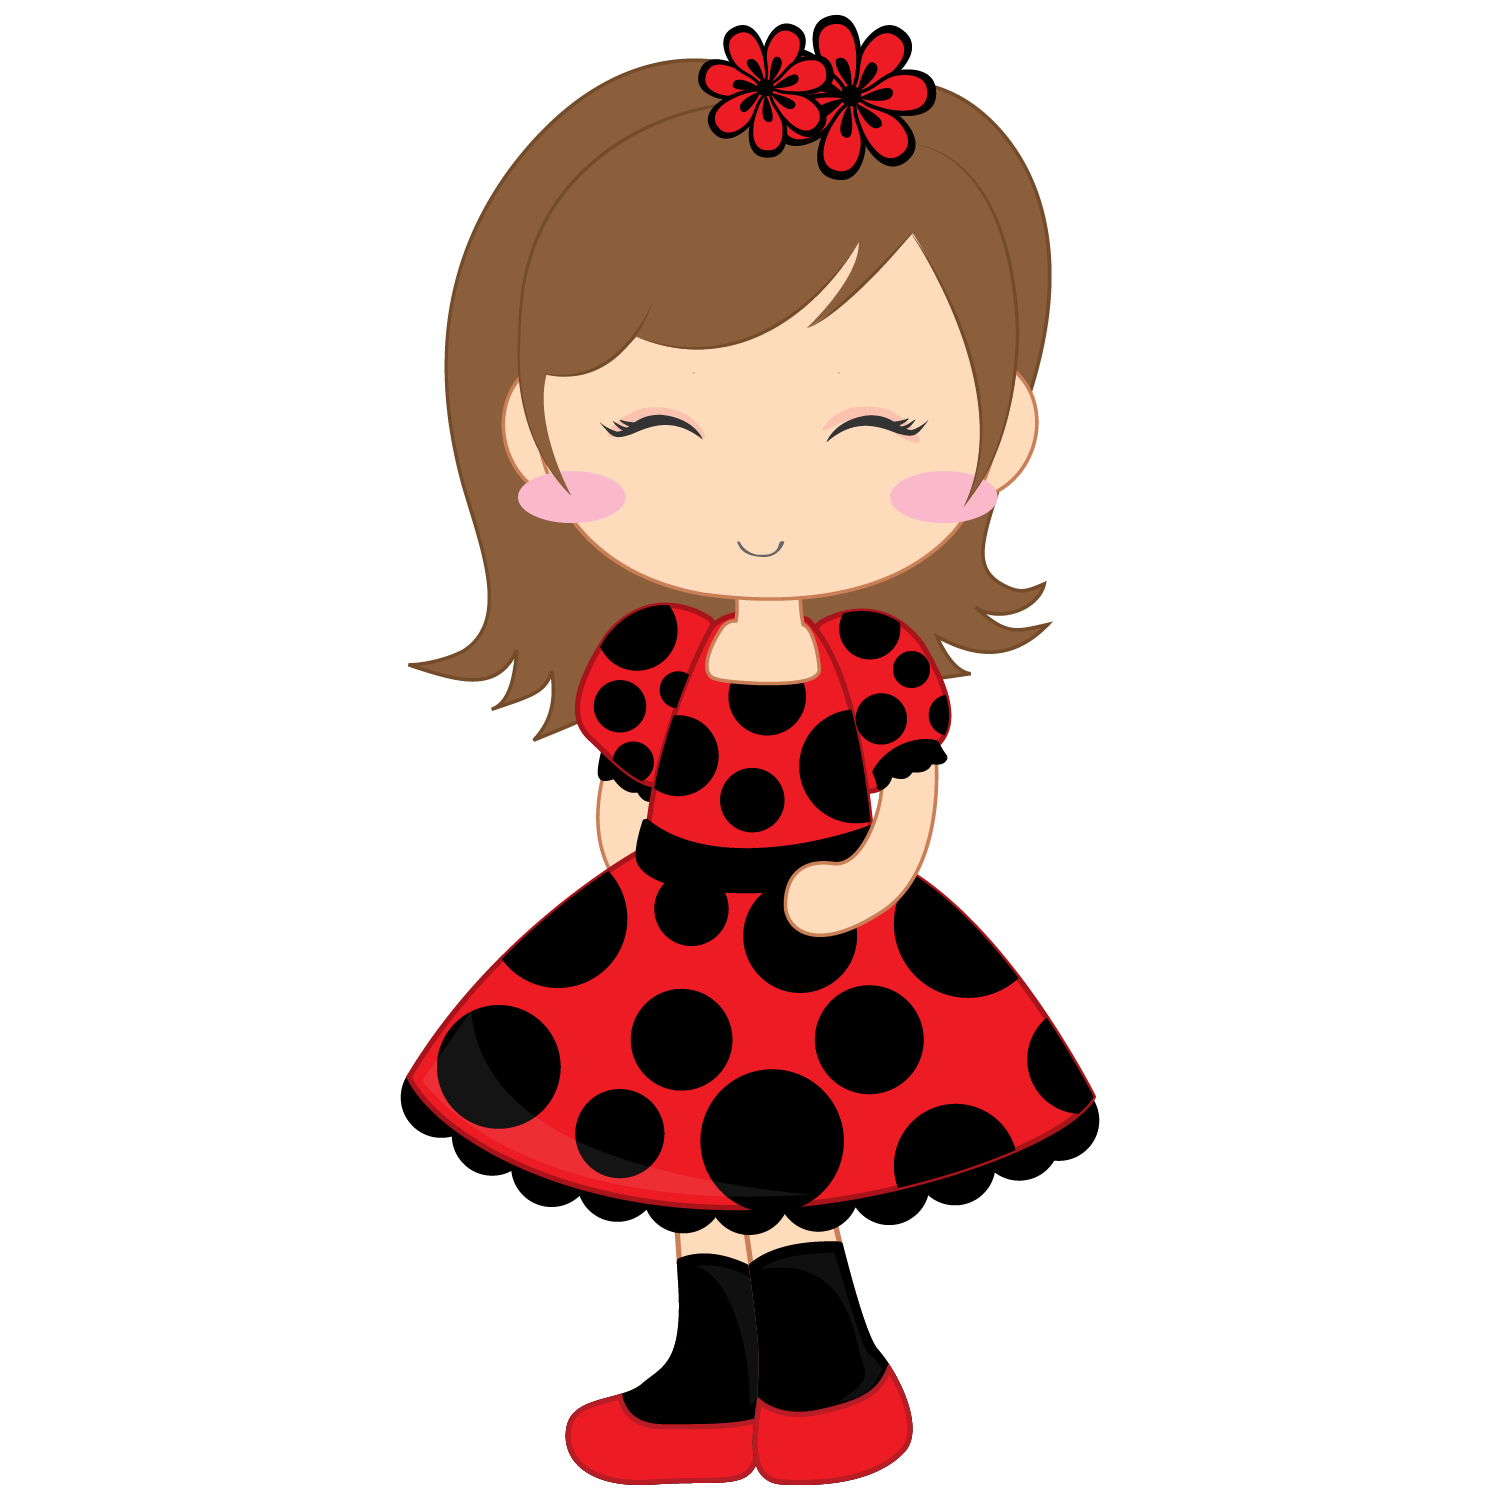 Girl rock star clipart image free library Girl and Ladybugs Clip Art. | Oh My Fiesta For Ladies! image free library